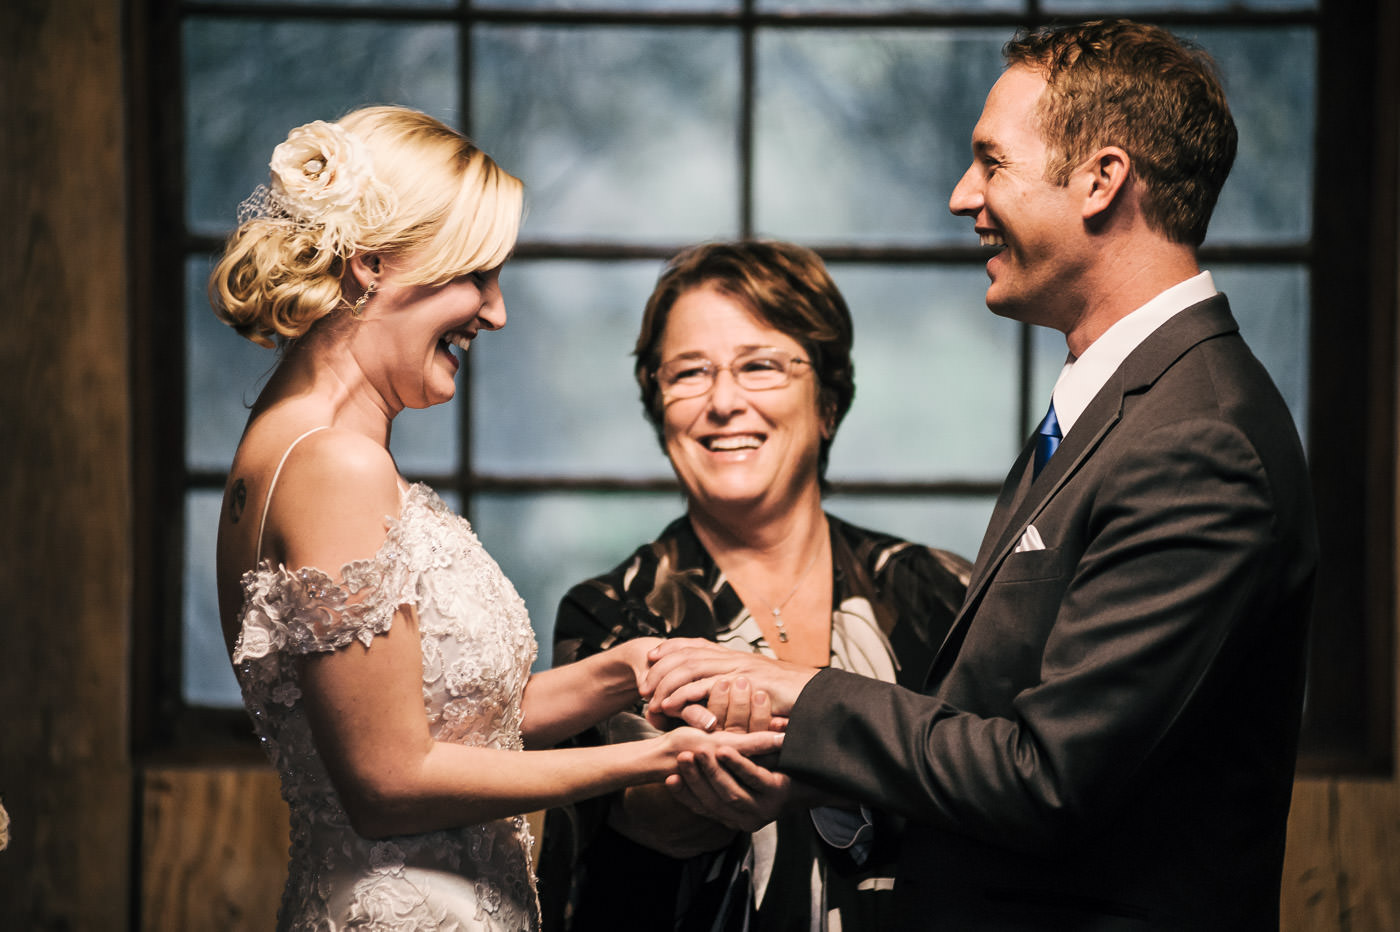 best wedding photograper in temecula california captures a couples sweet laugh during their ceremony at whispering oaks terrace